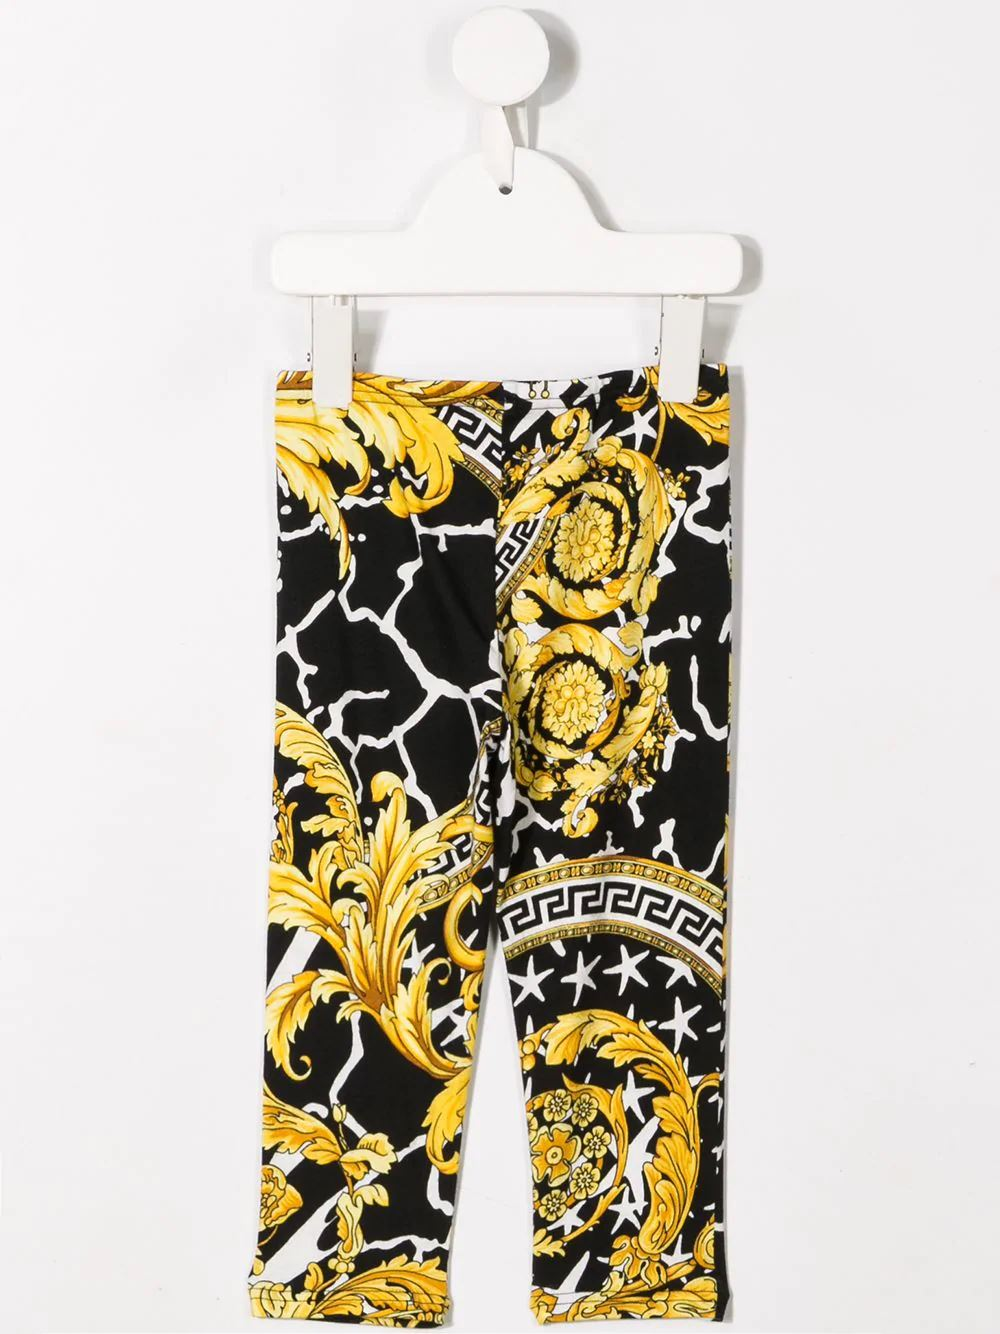 YOUNG VERSACE Barocco print trousers - Maison De Fashion